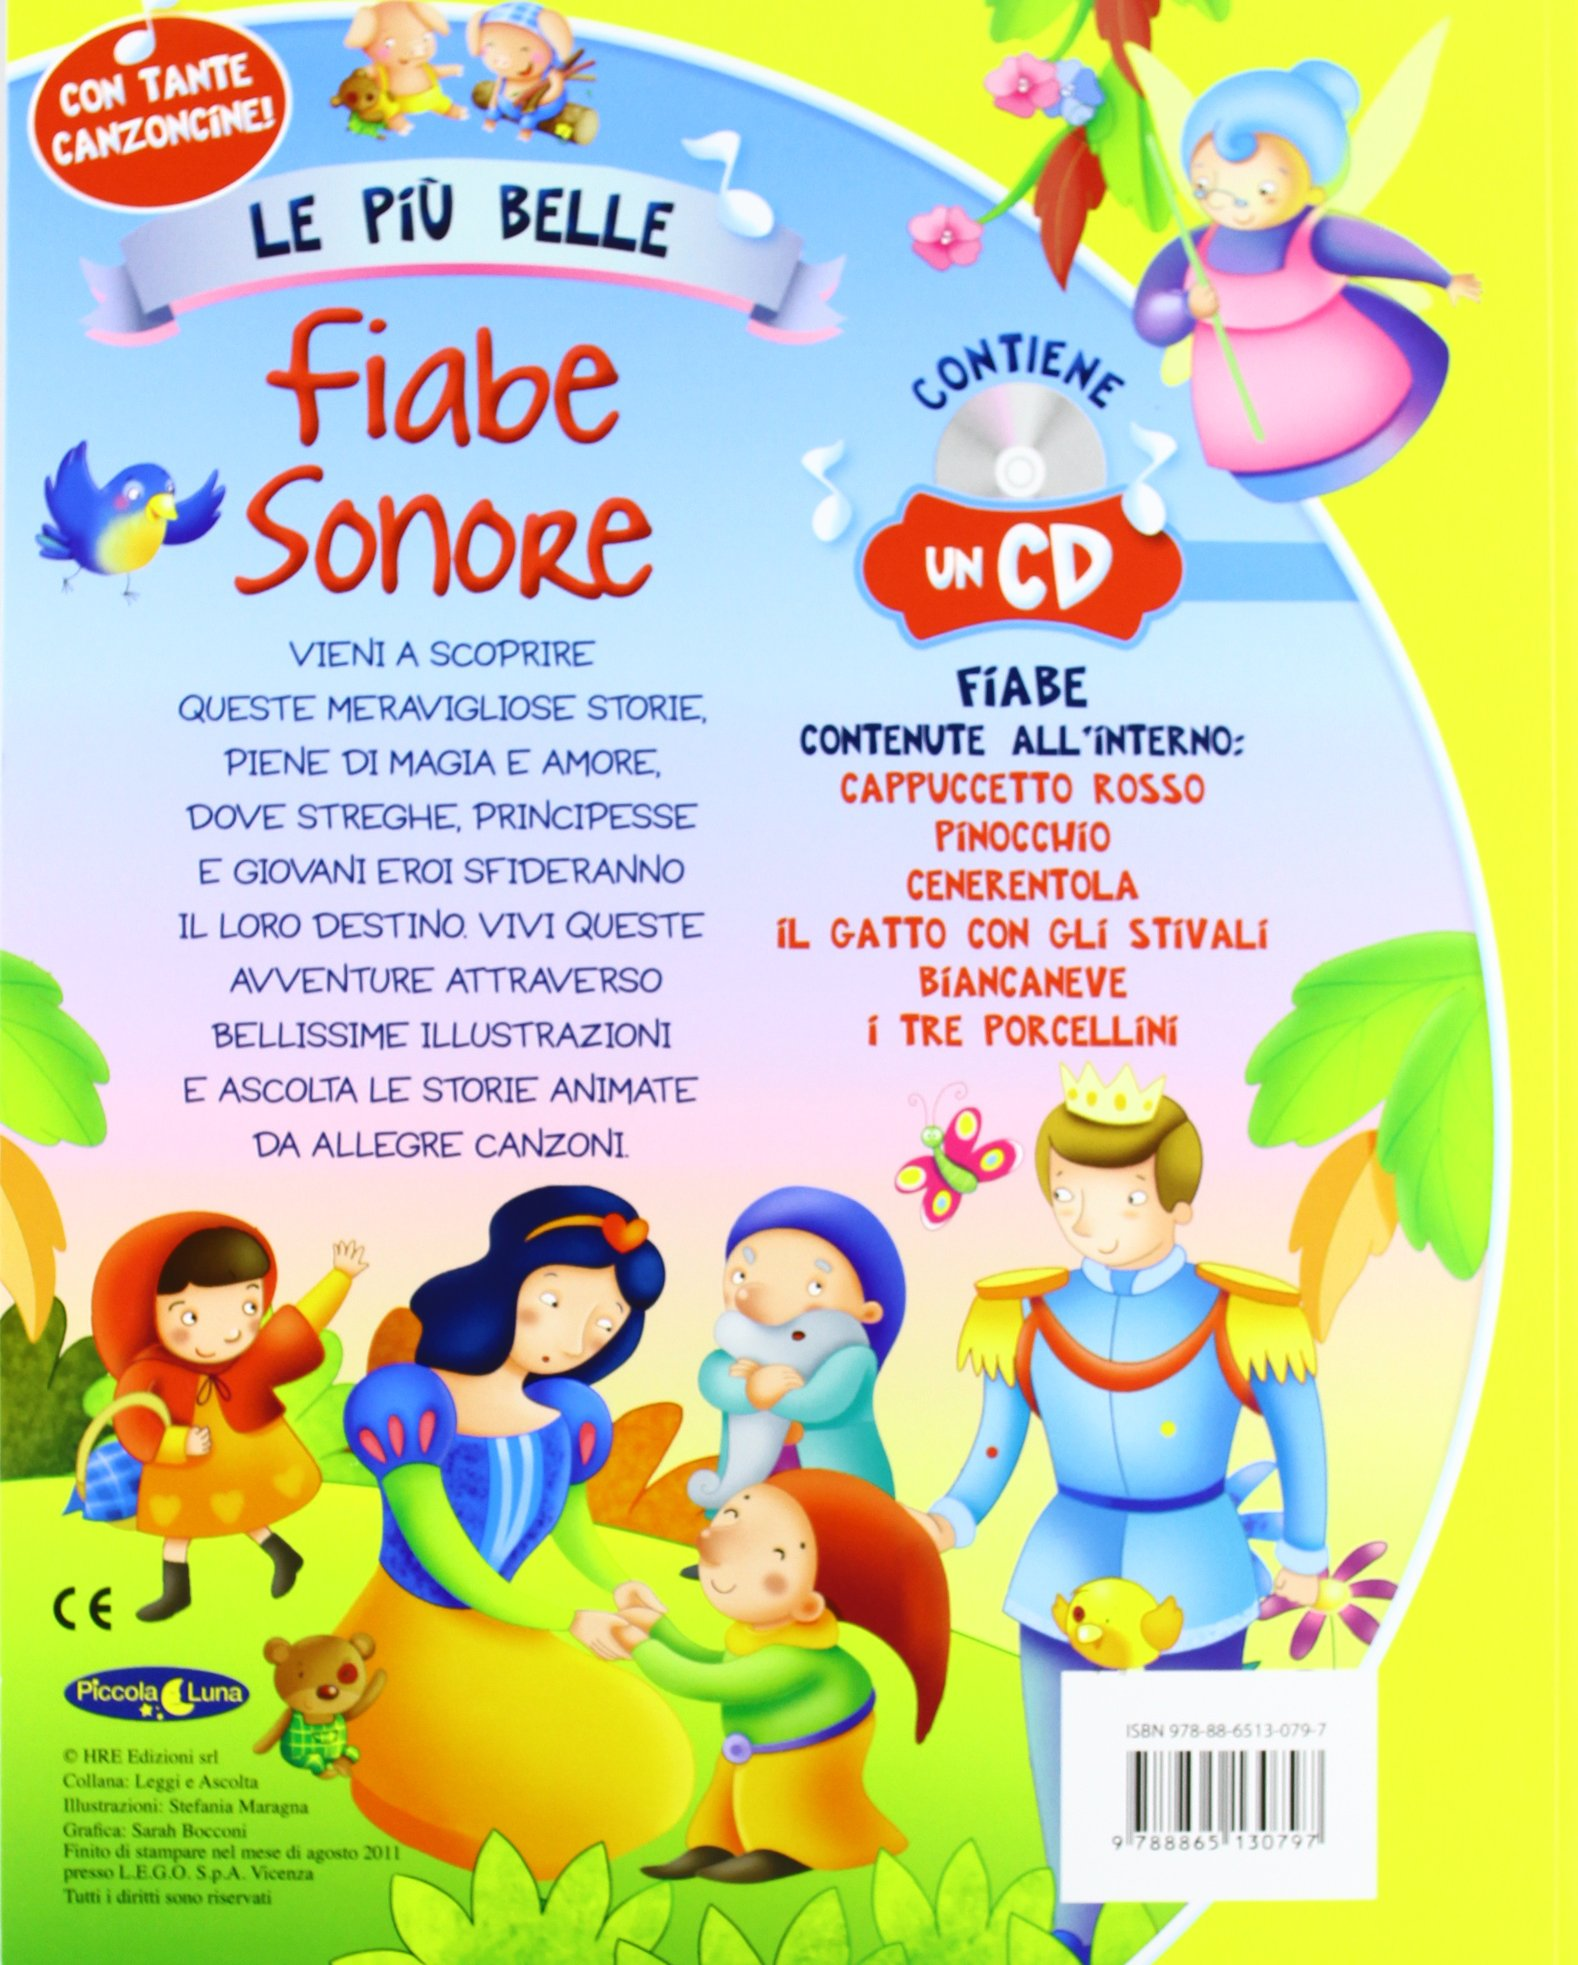 Top Amazon.it: Le più belle fiabe sonore. Ediz. illustrata. Con CD  EN78